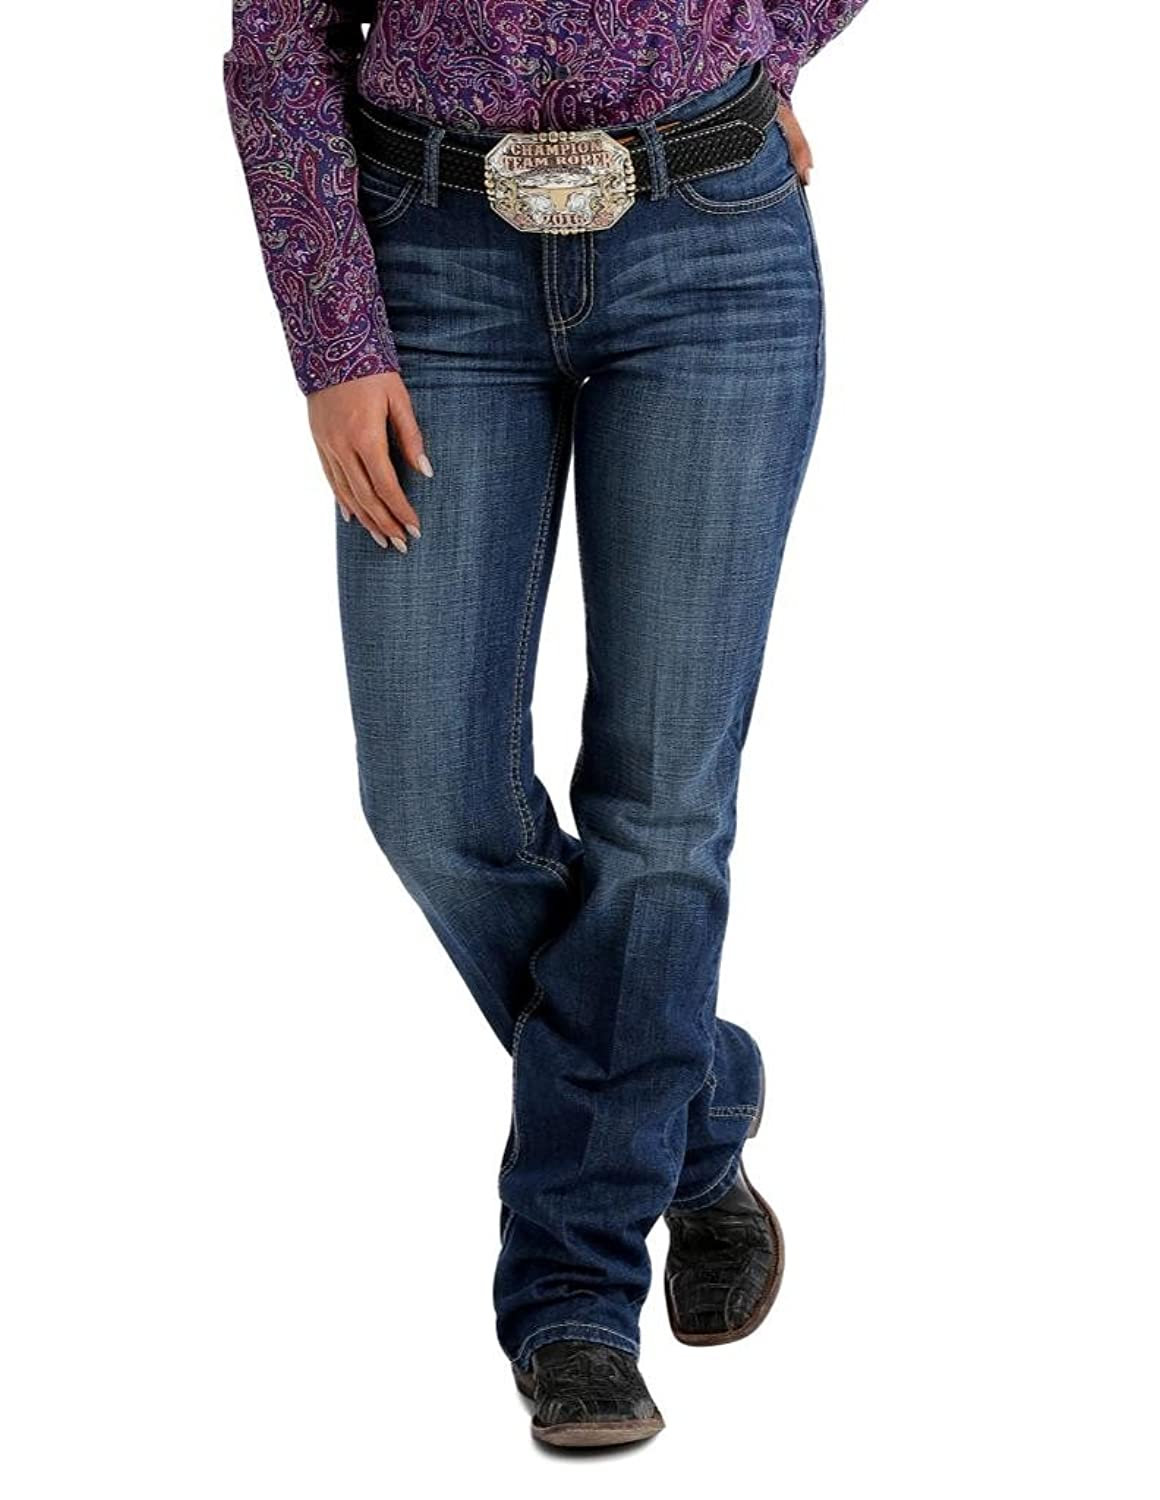 Cinch Jenna Relaxed Rodeo Riding Jean